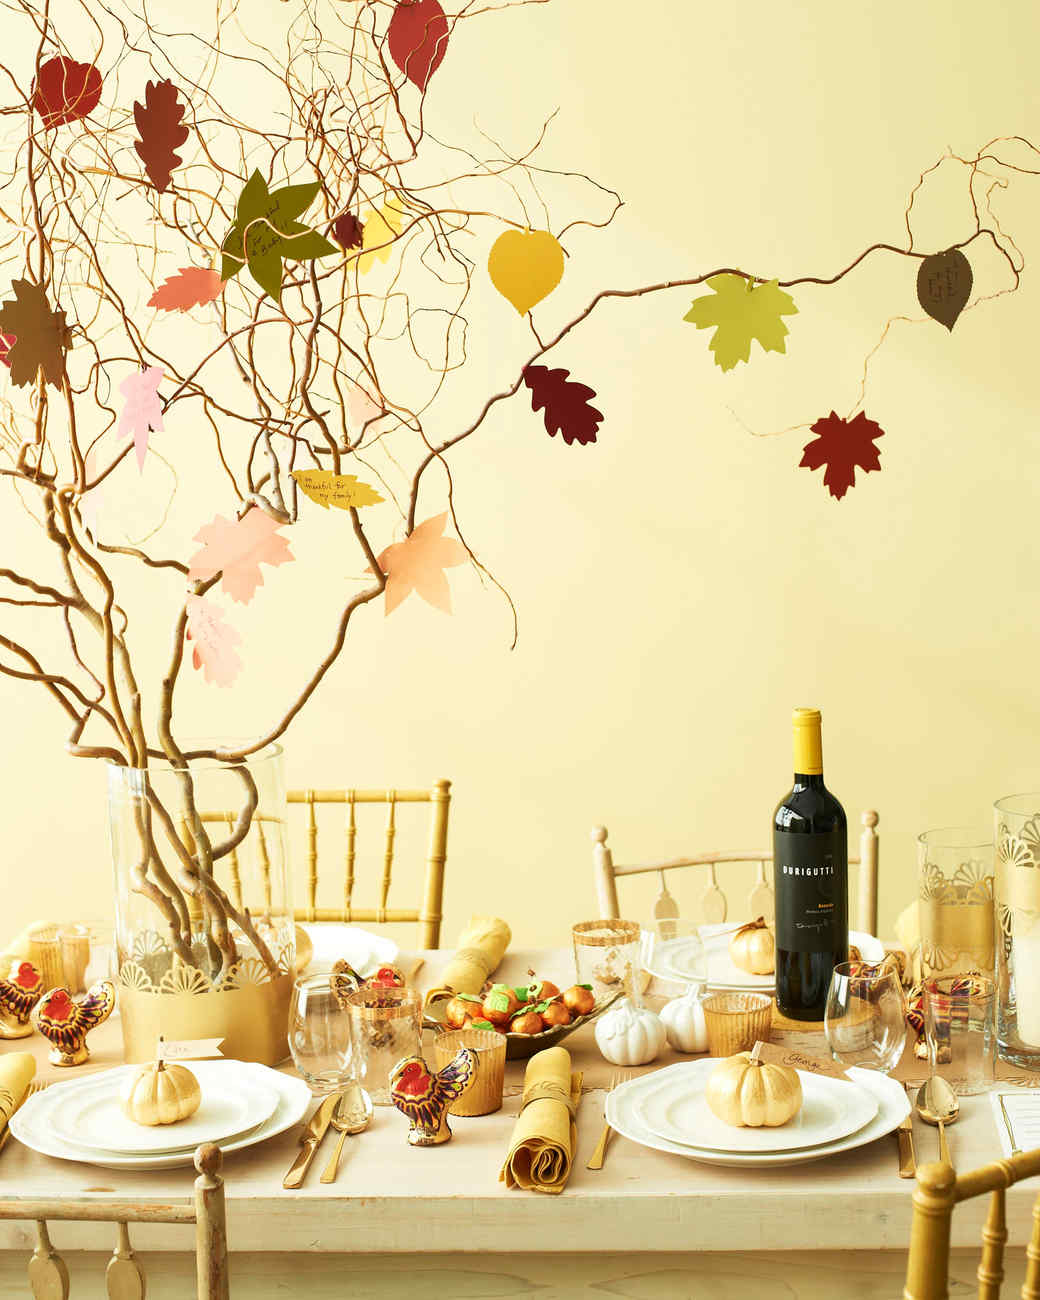 Thanksgiving Decor Ideas: 11 Easy-to-Make Thanksgiving Decorations For Your Home